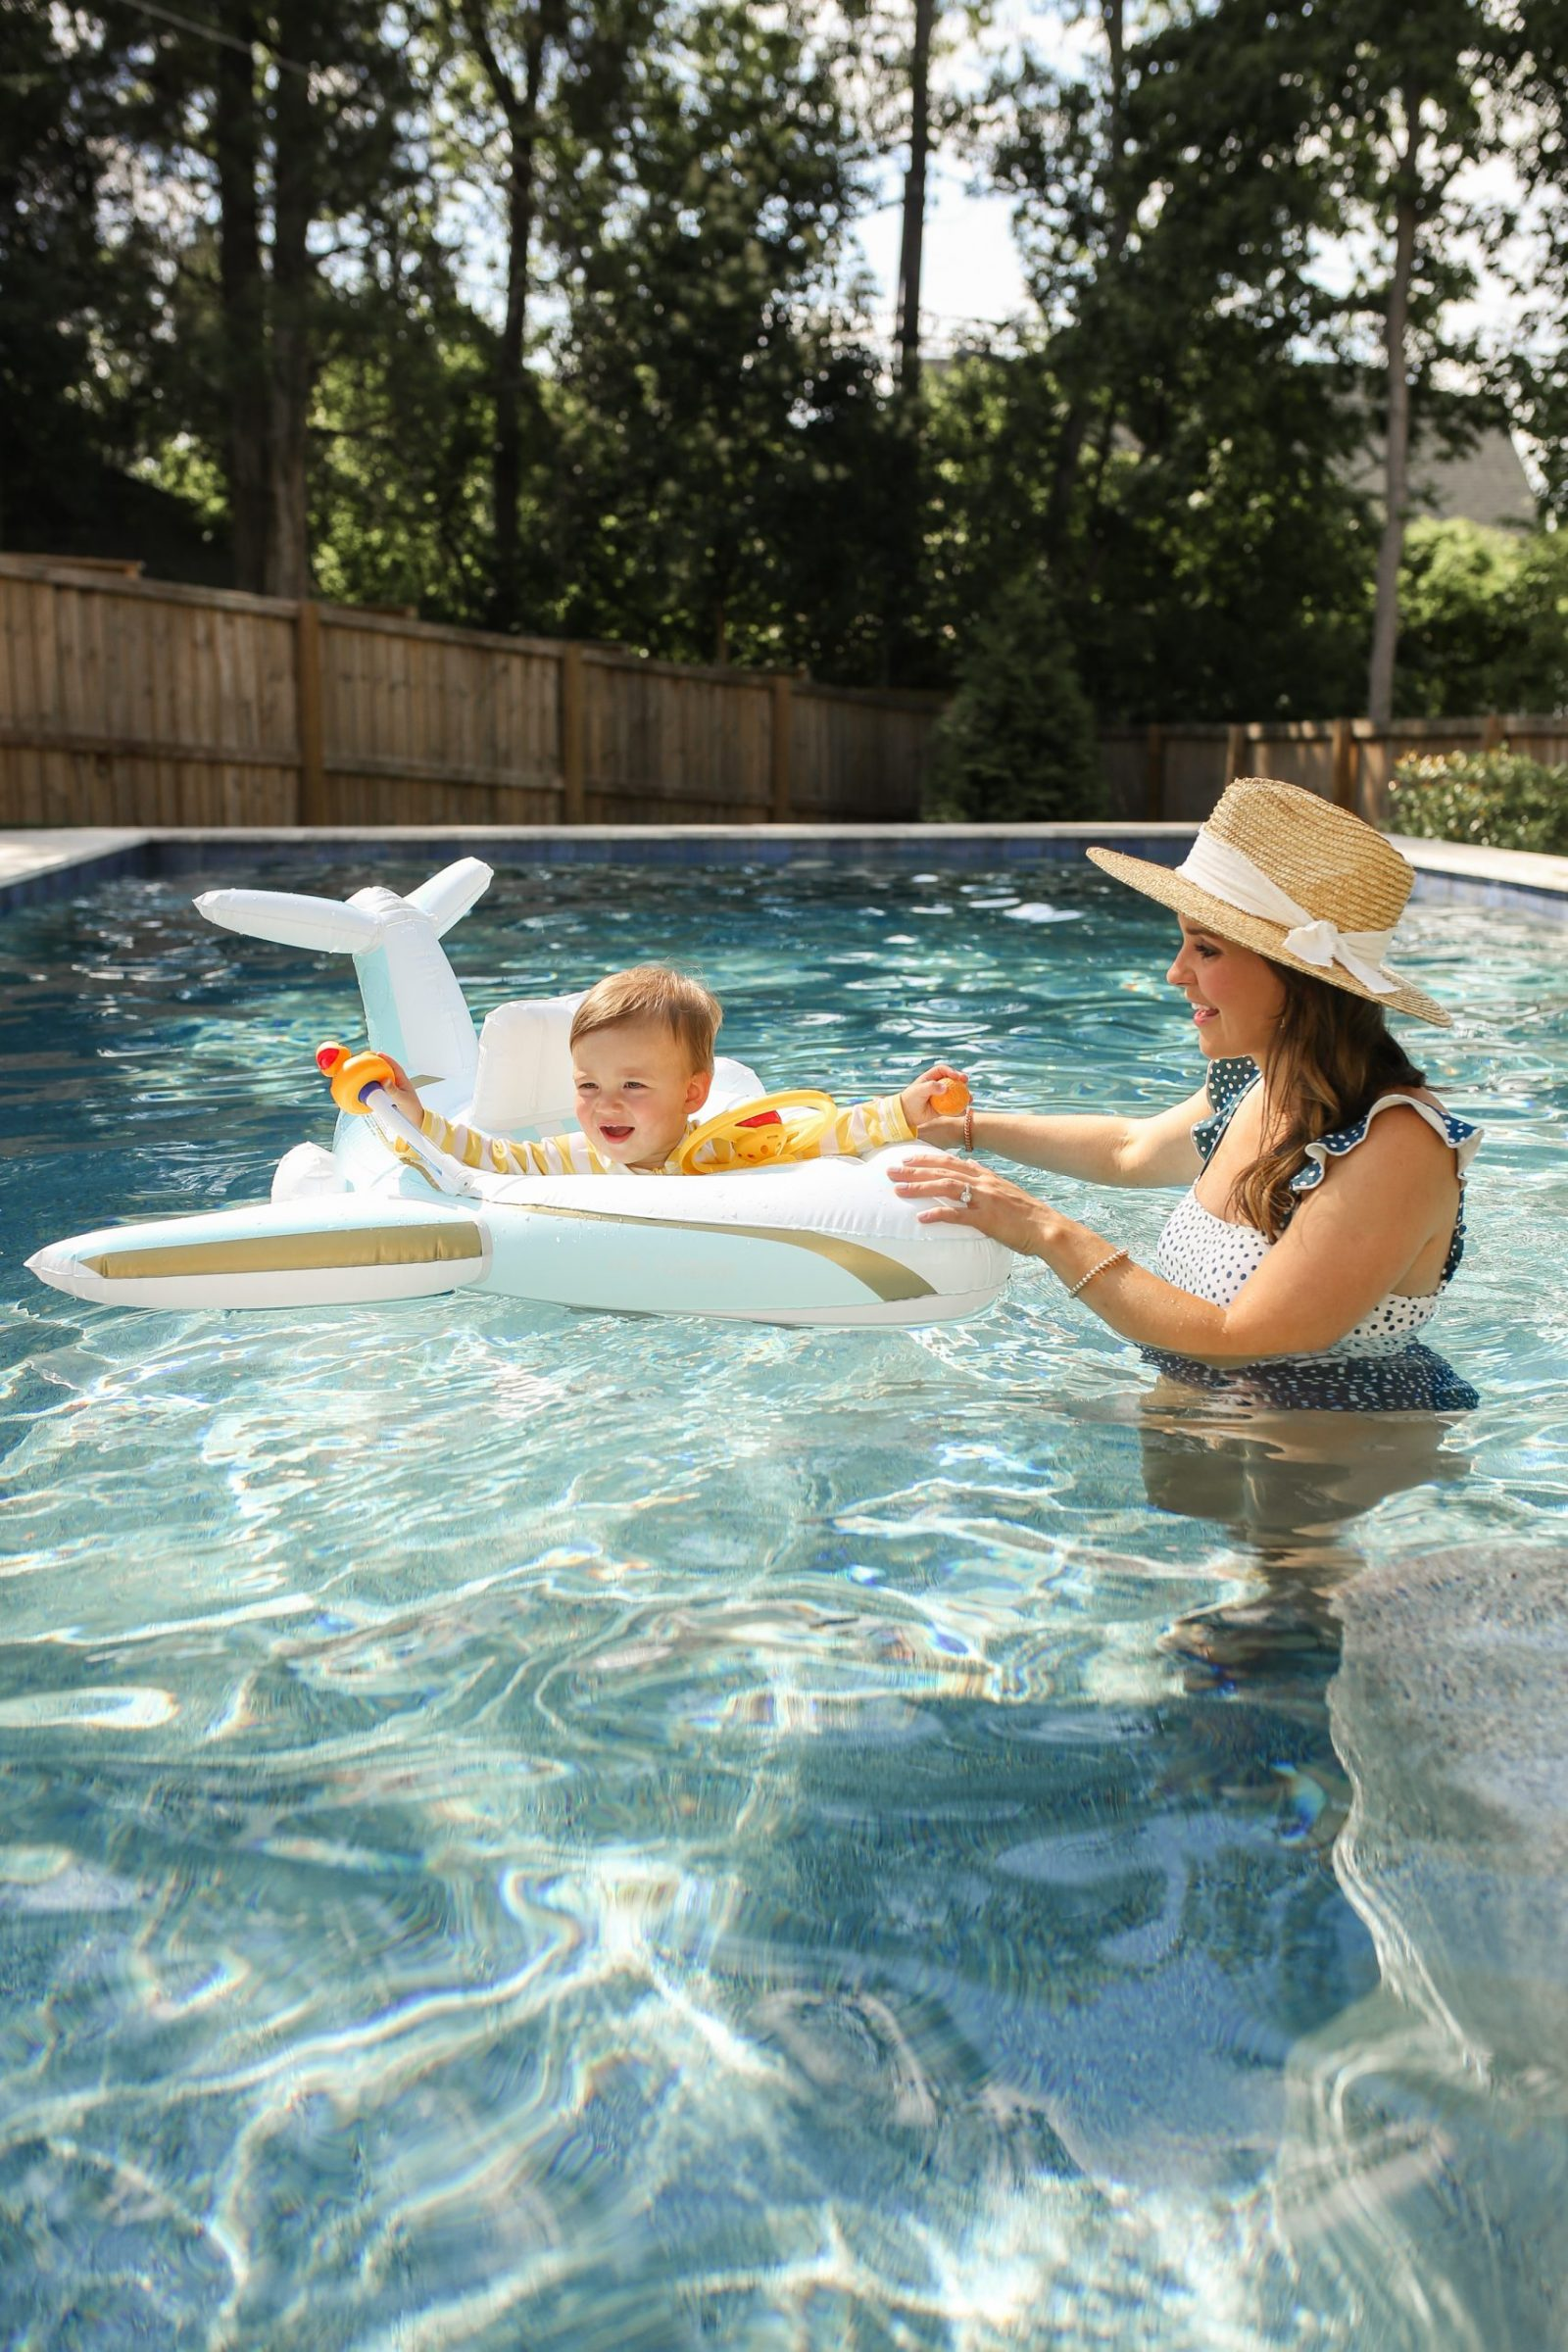 funbaby pool floats